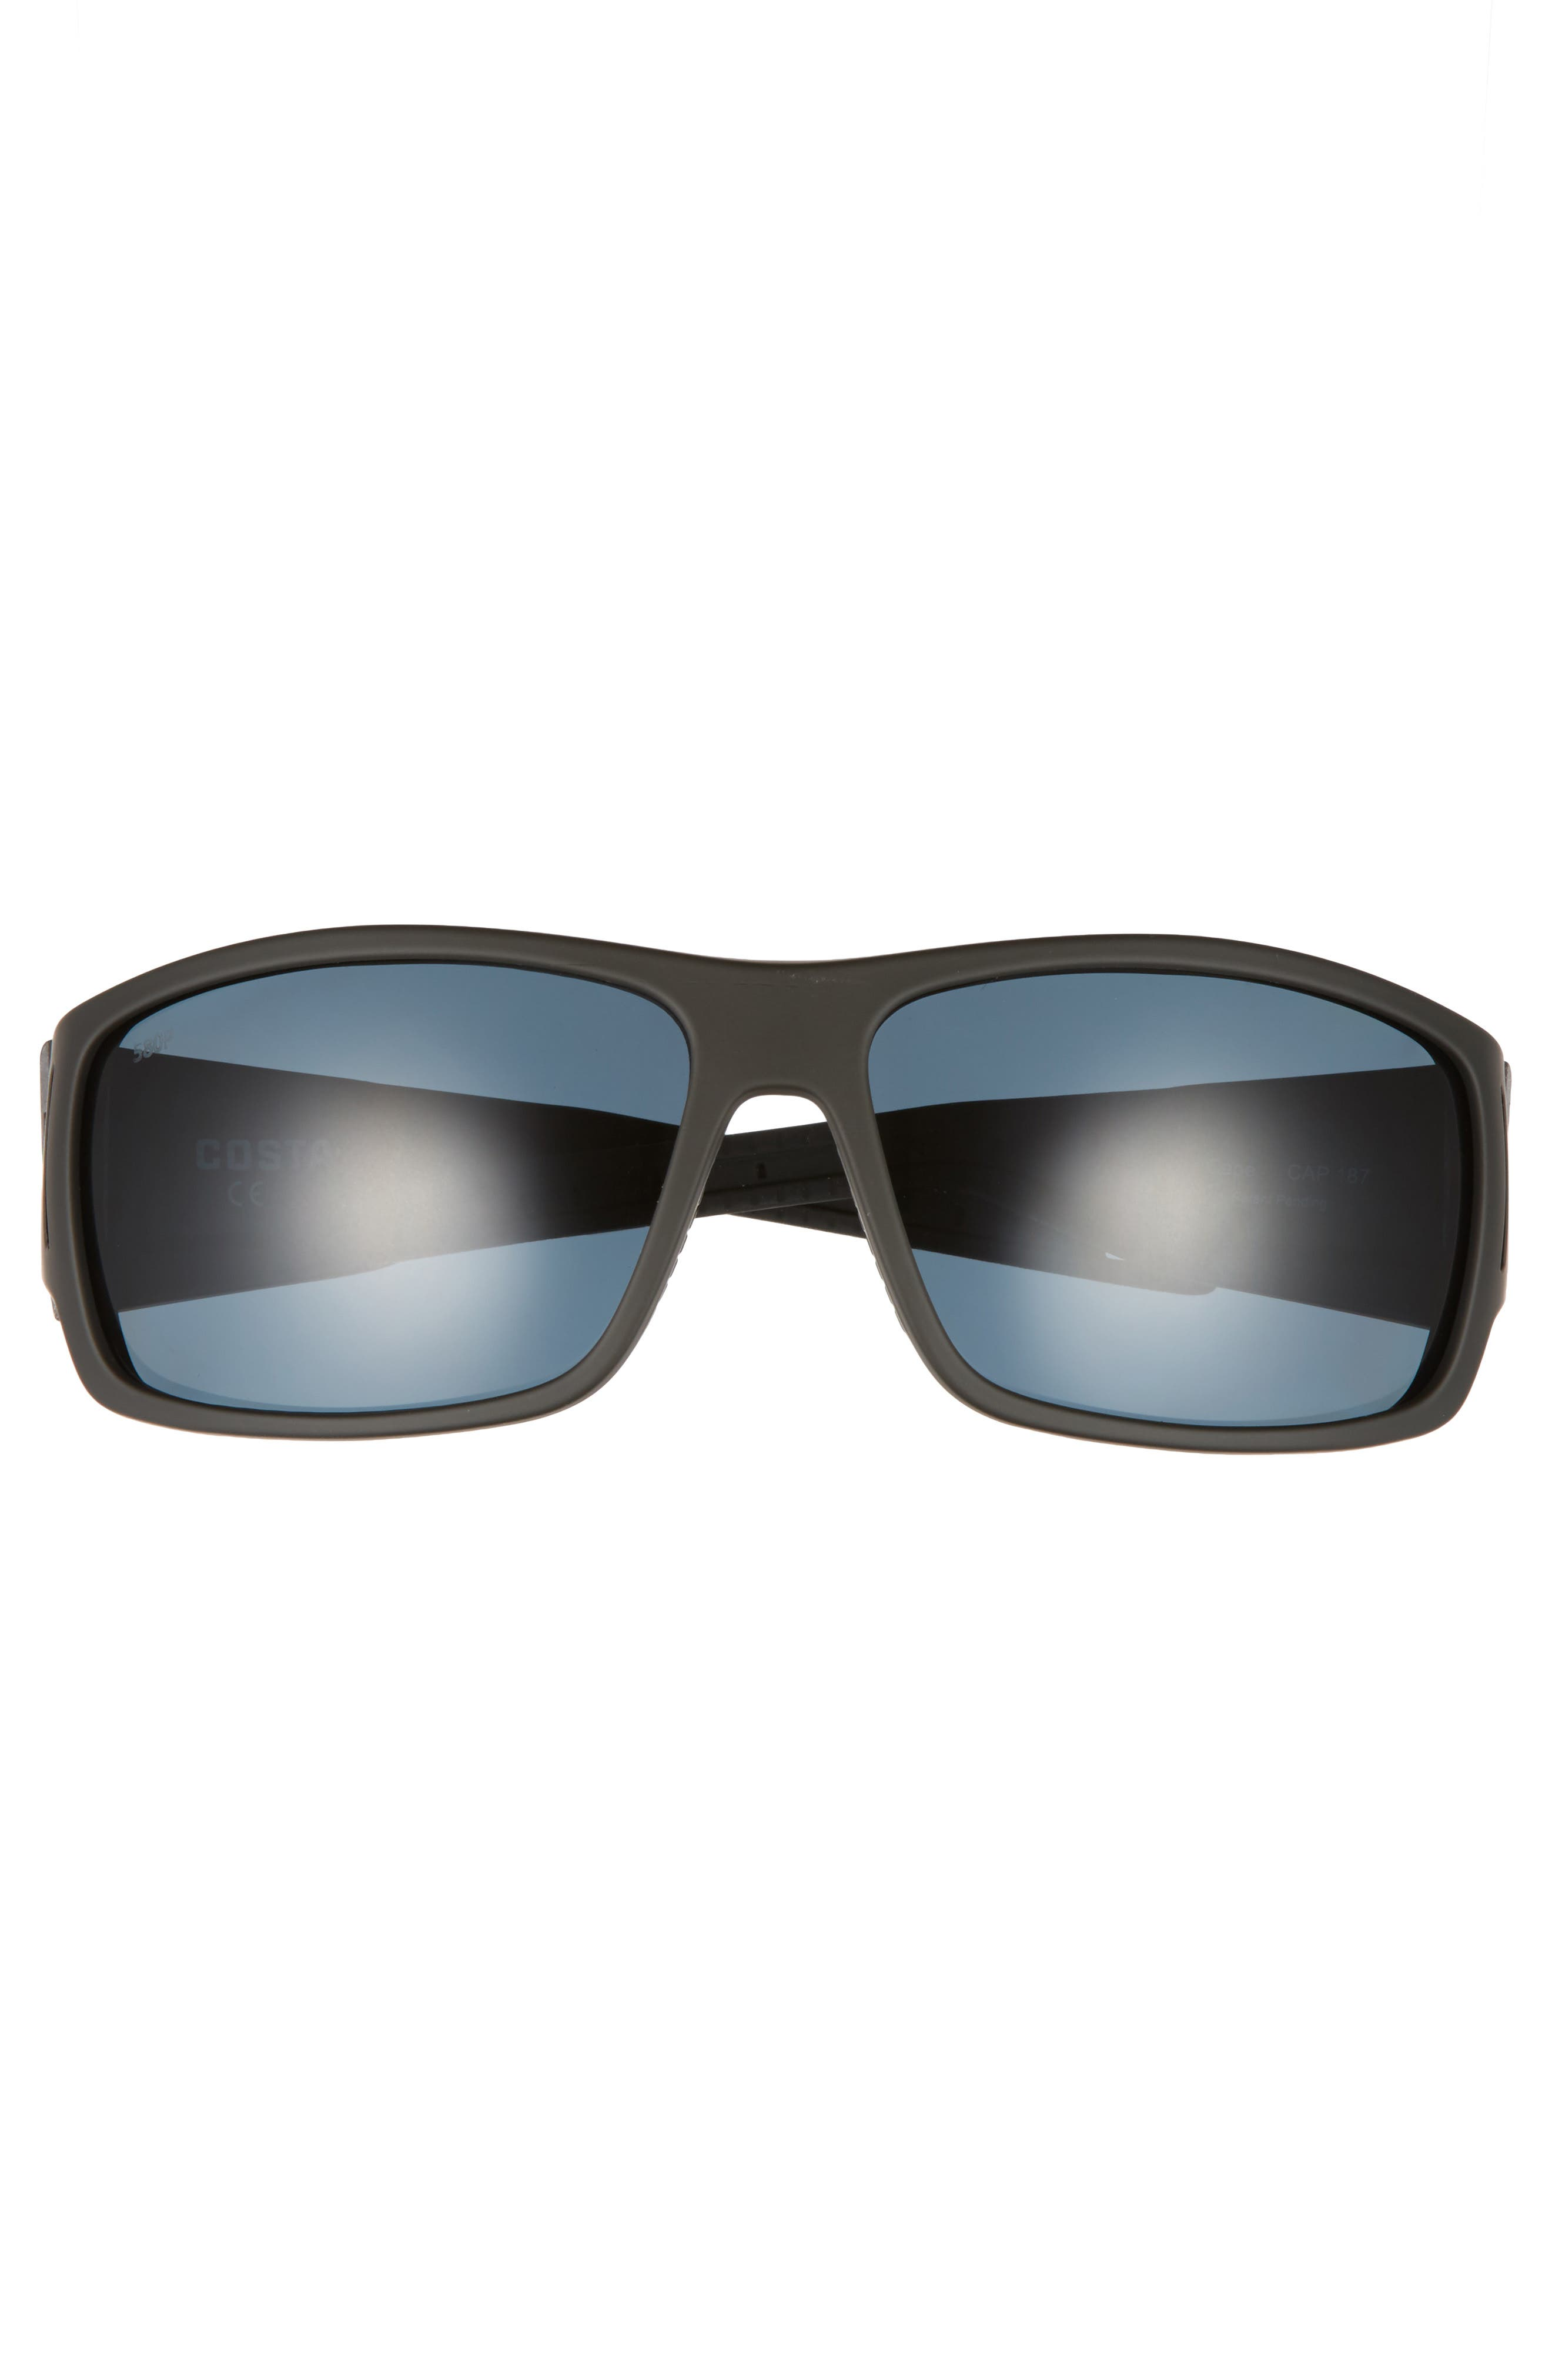 Cape 66mm Polarized Sunglasses,                             Alternate thumbnail 2, color,                             Matte Black/ Gray